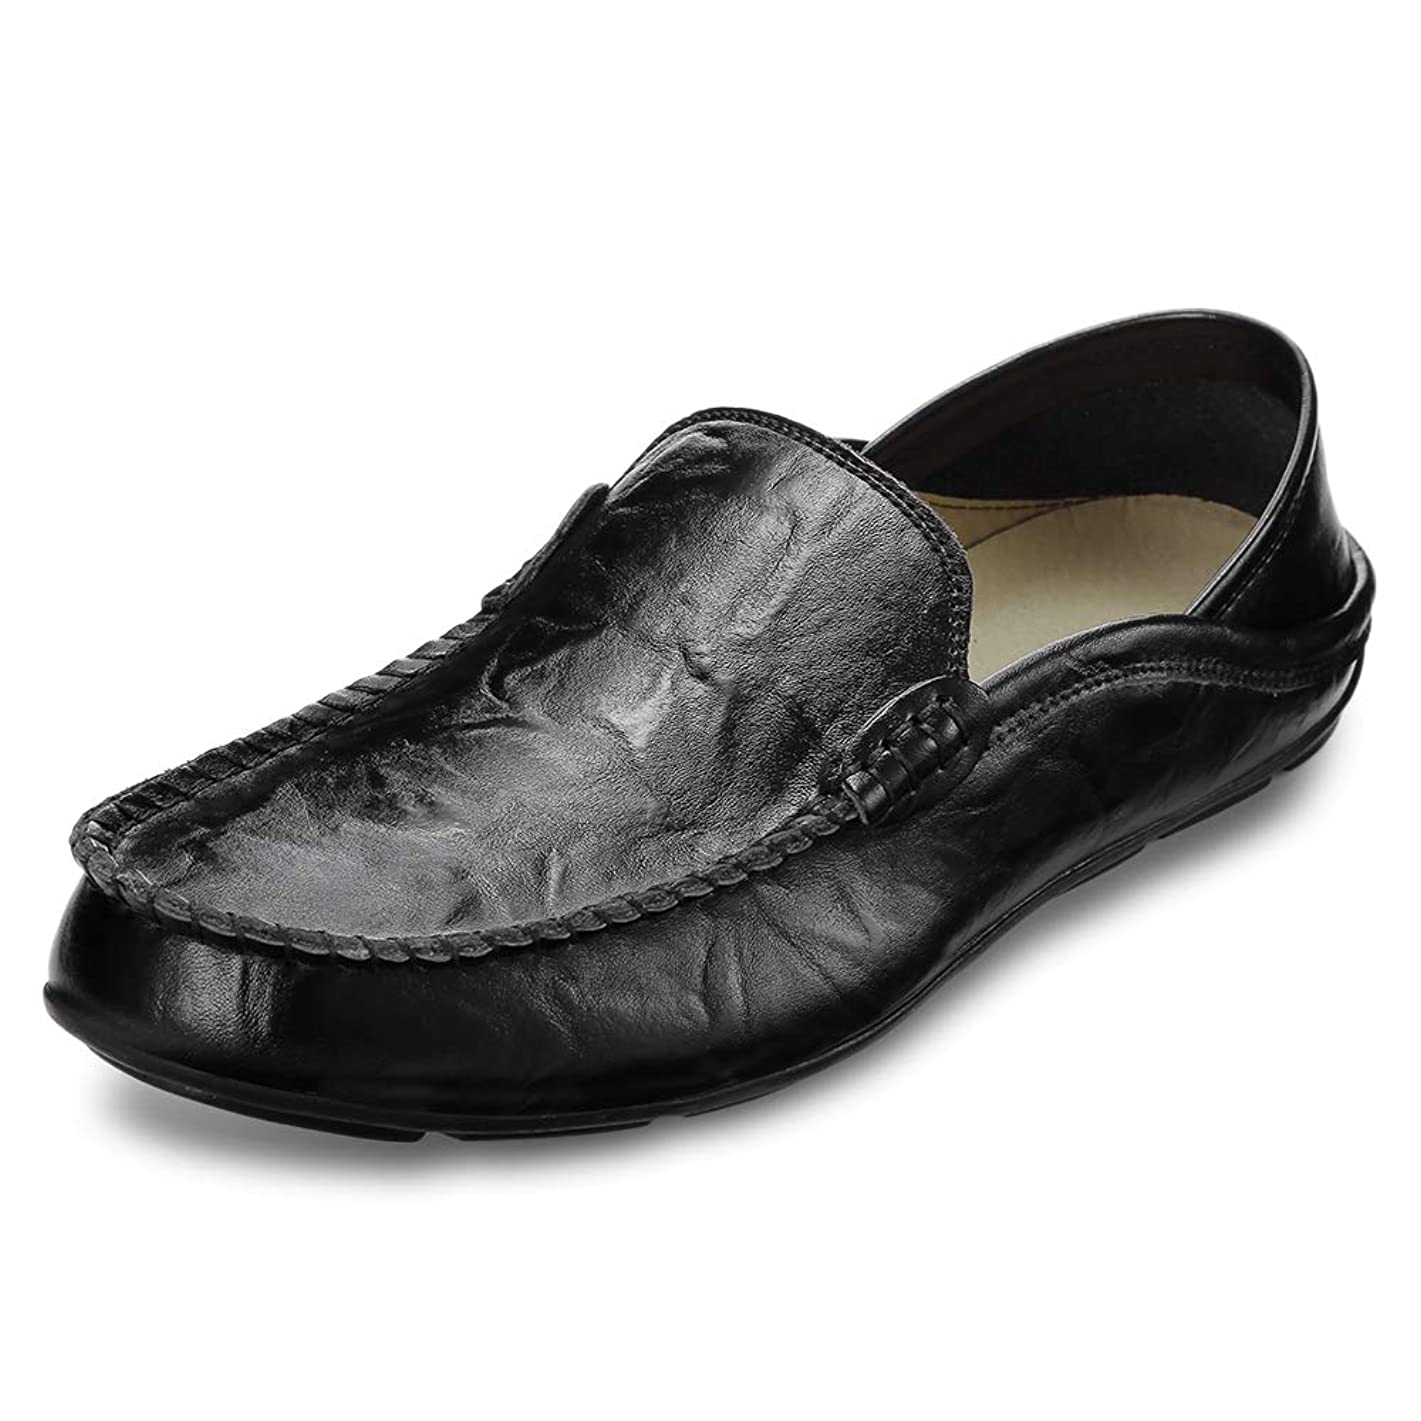 KCatsy Genuine Leather Casual Peas Shoes for Men